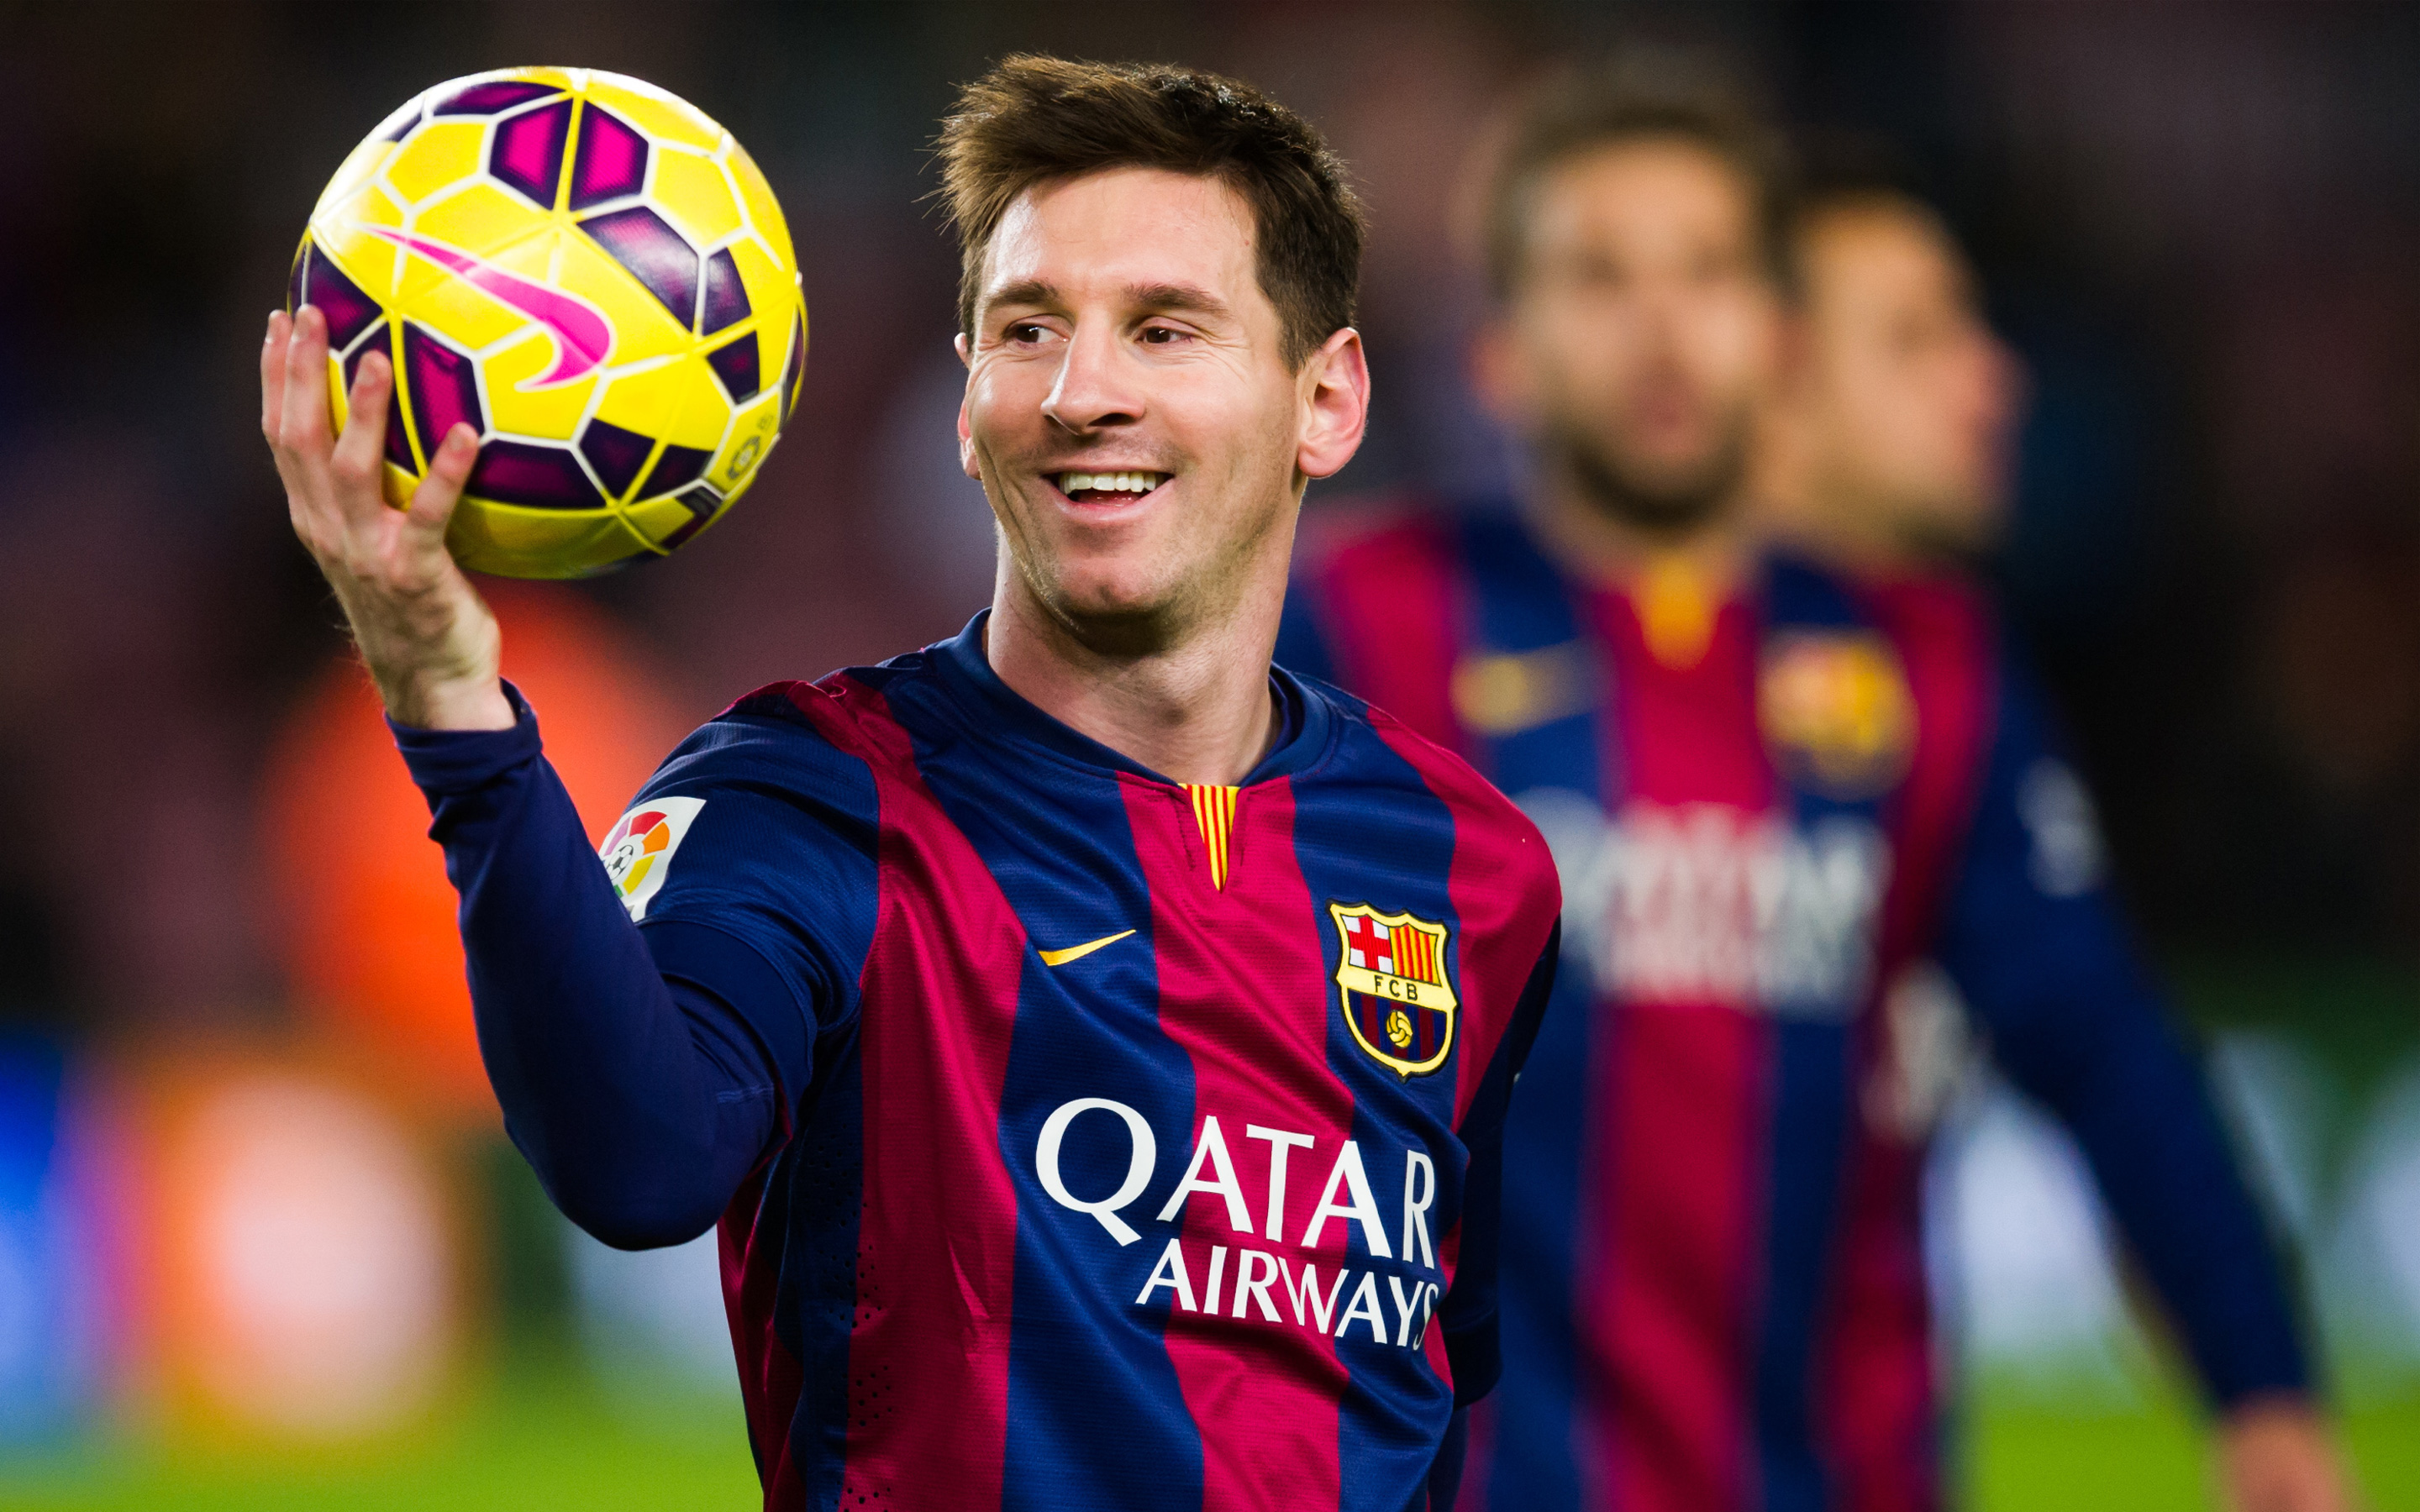 Argentine soccer hero Lionel Messi is the world's best footballer.